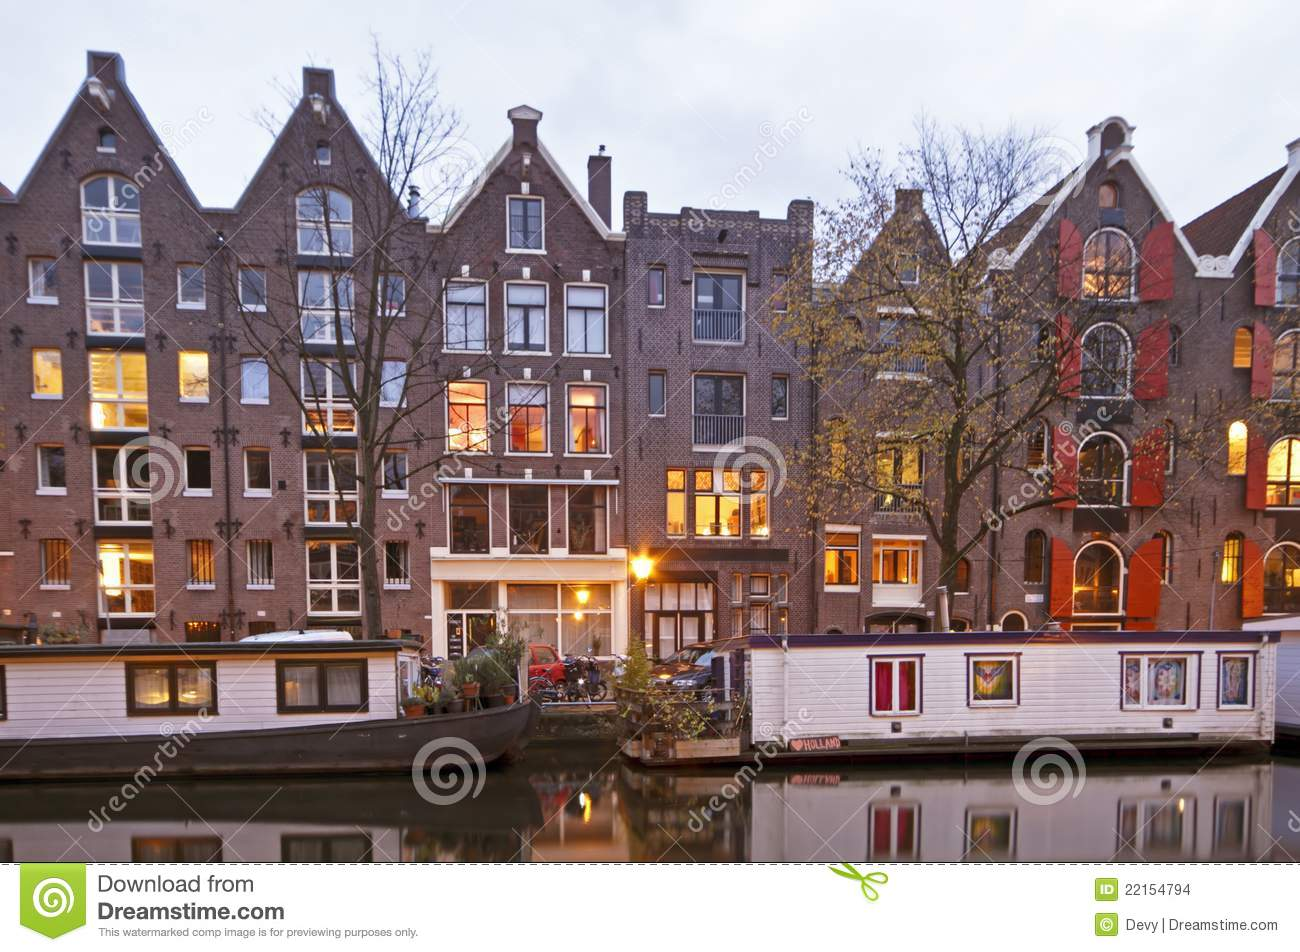 Pictures of houses in the netherlands